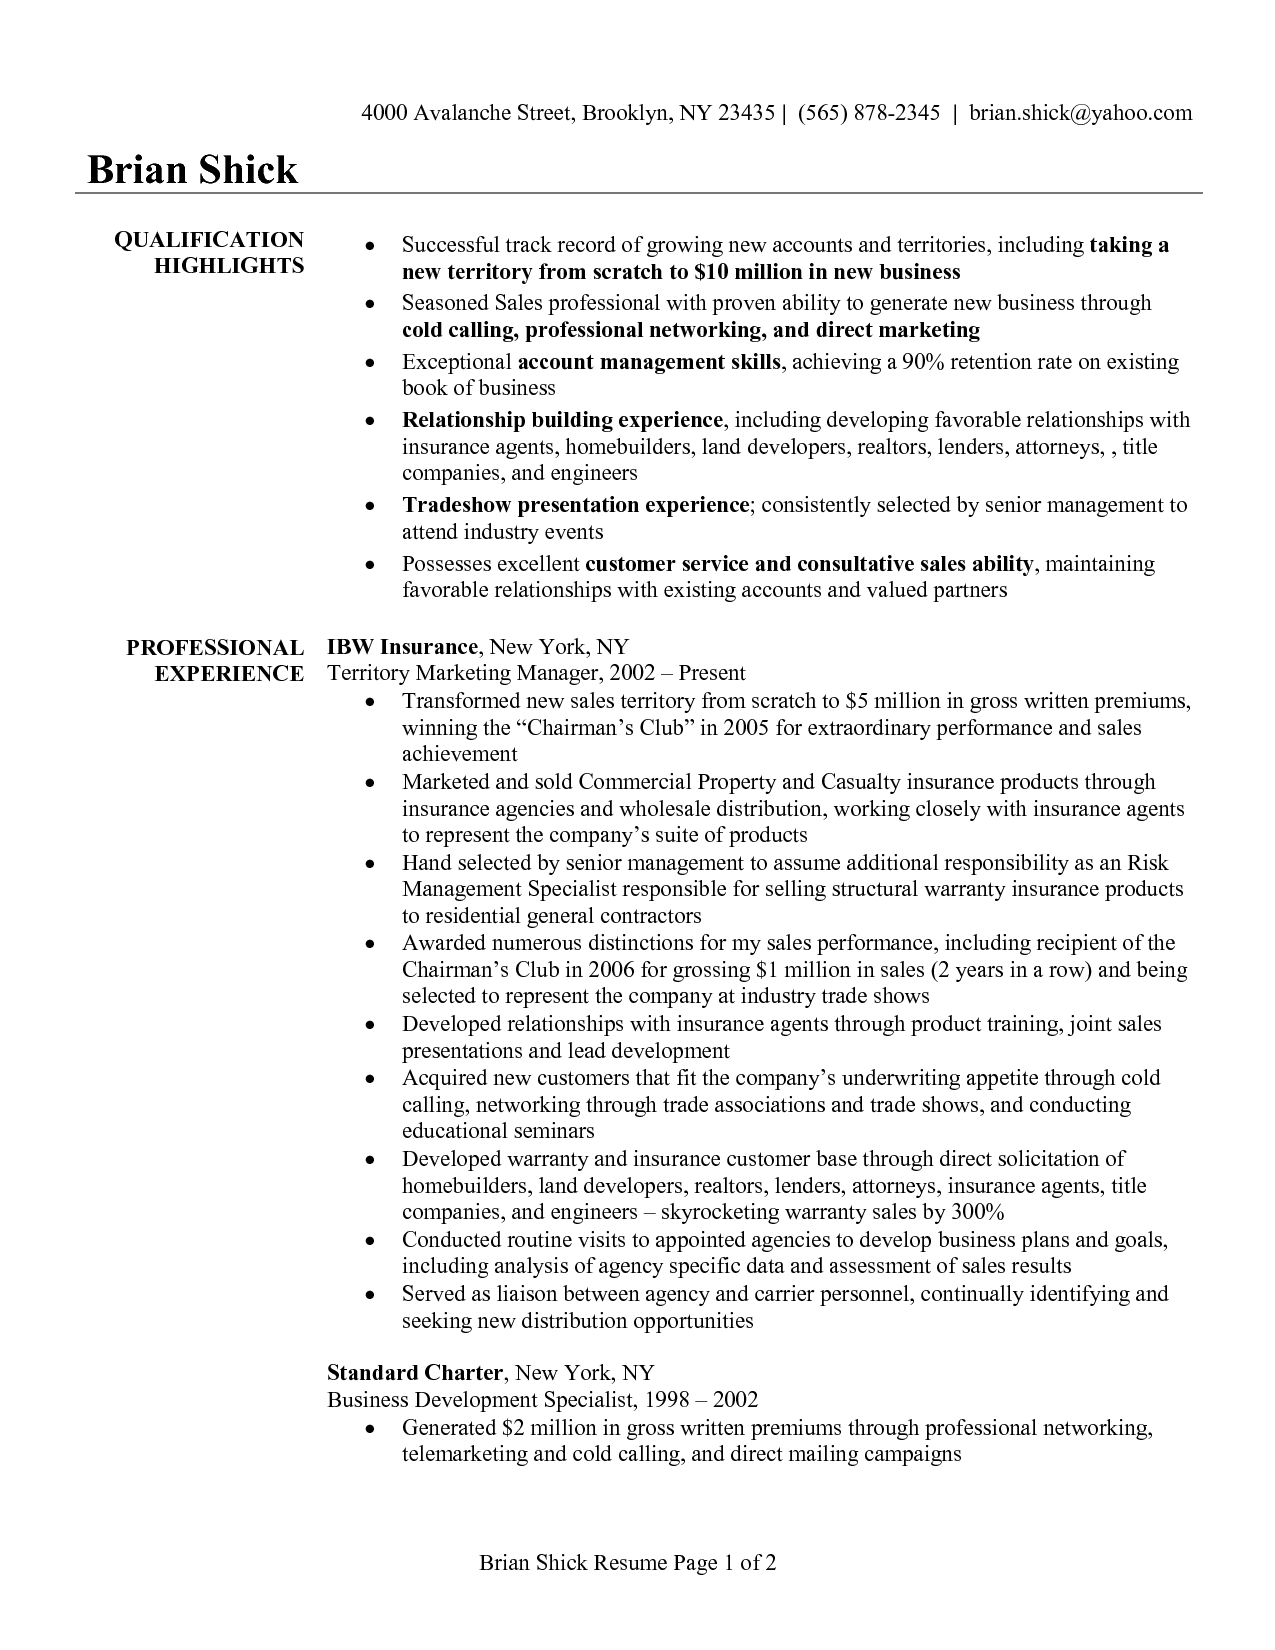 Life Insurance Agent Resumes   Http://www.jobresume.website/life  Insurance Agent Resume